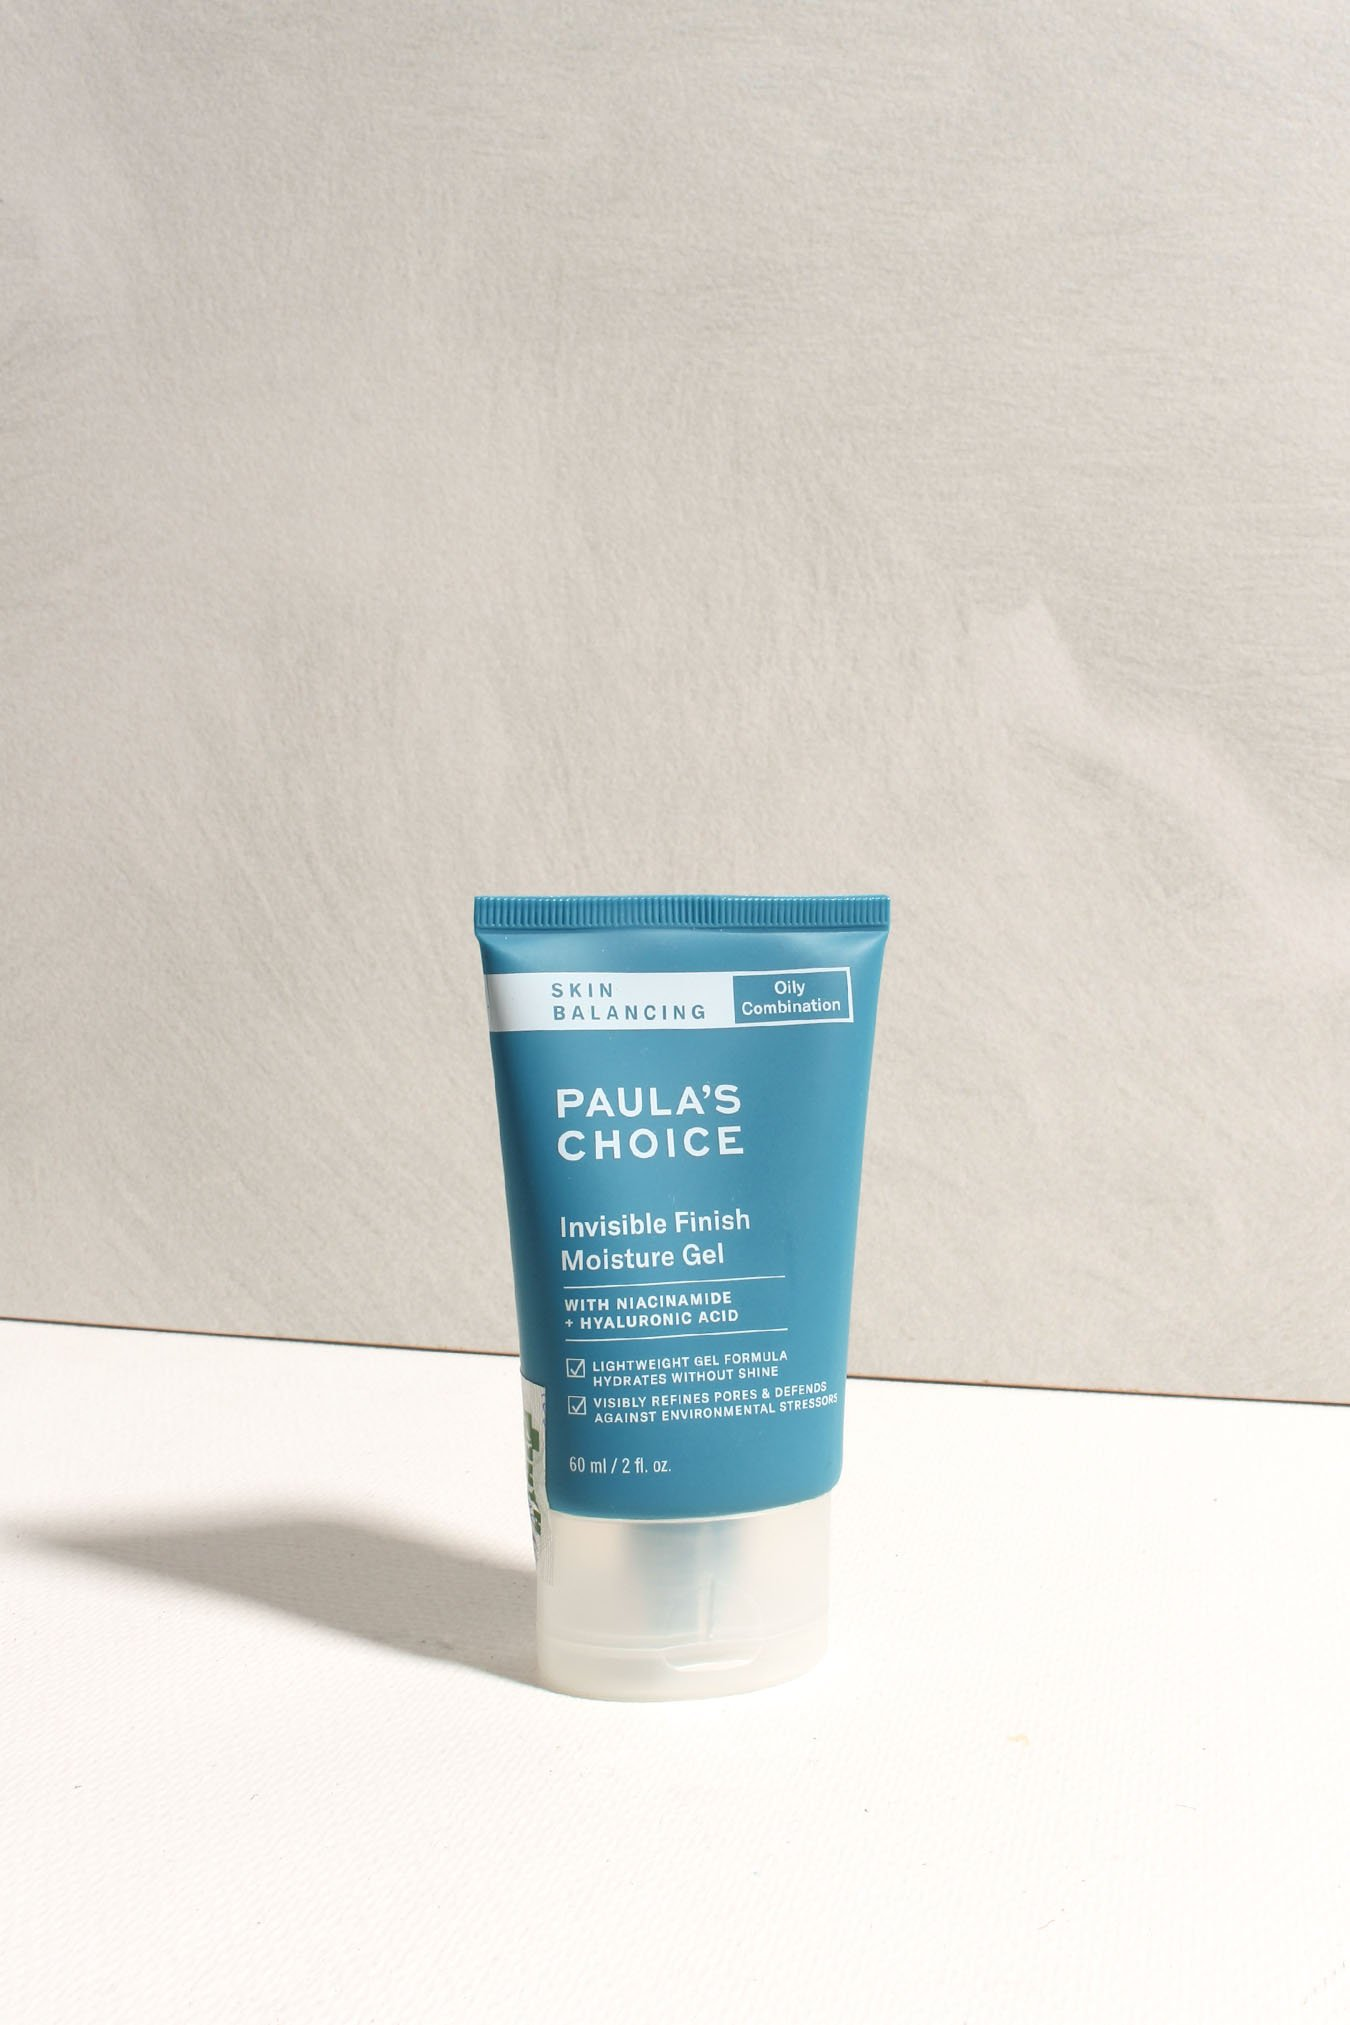 Image result for Paula's Choice Skin Balancing Invisible Finish Moisture Gel